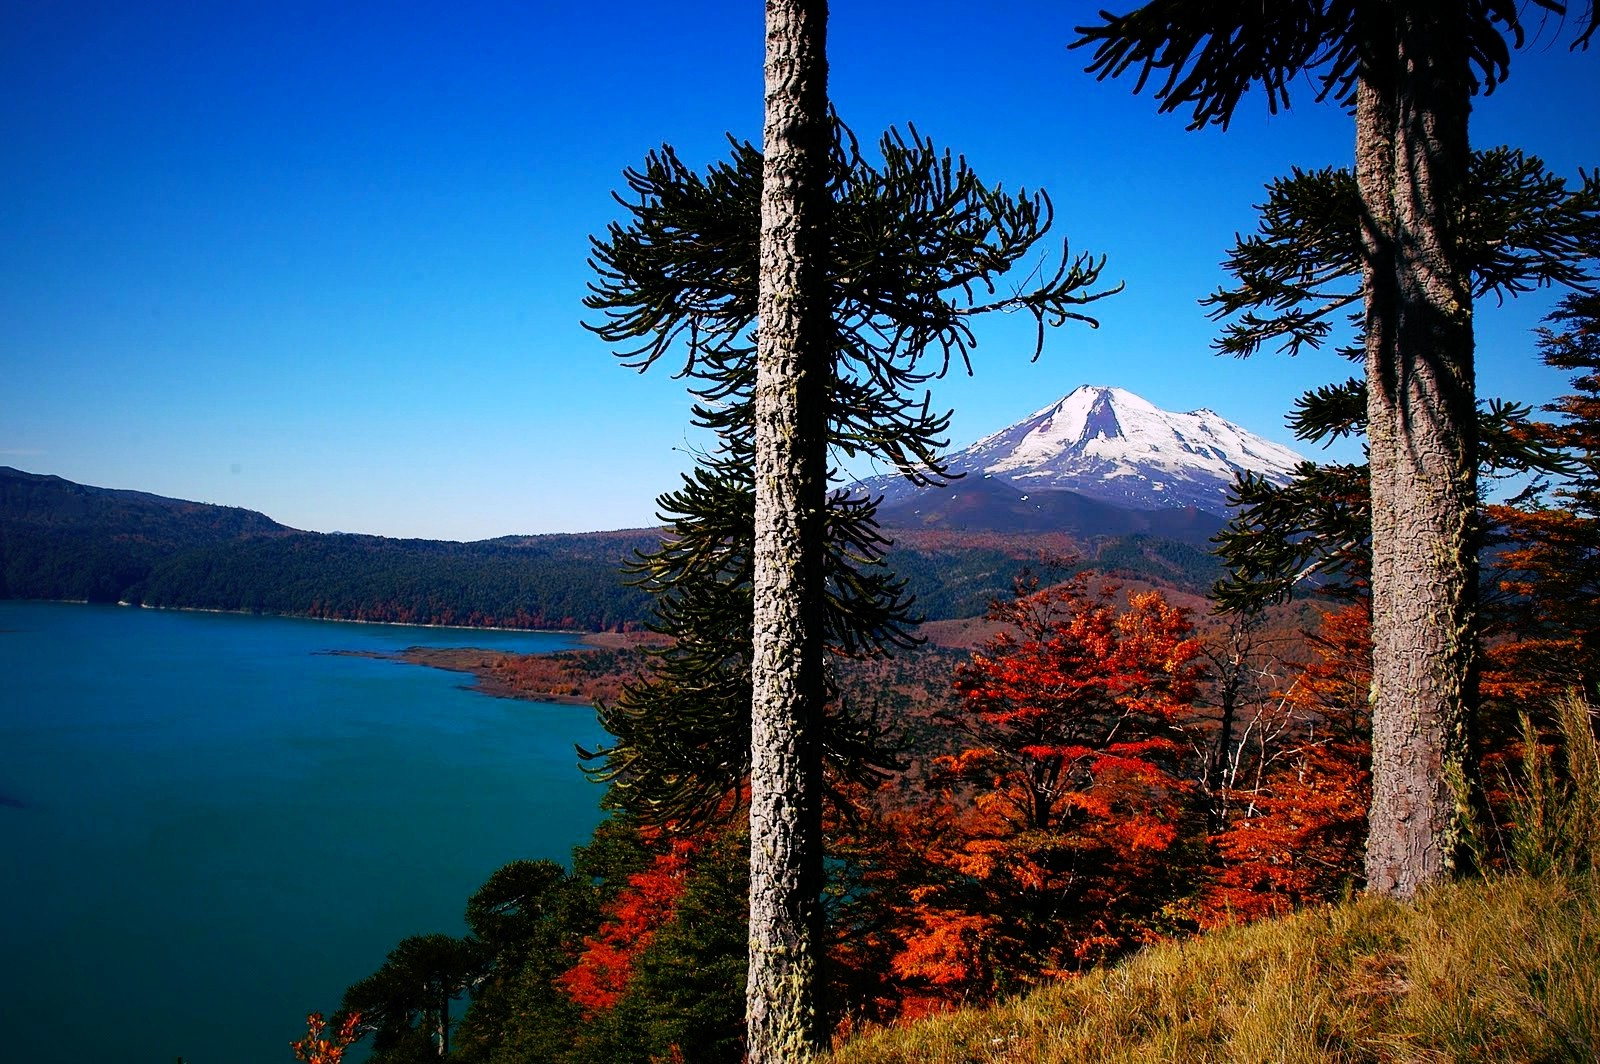 3d Fall Desktop Wallpaper Volcano Chile Forest Lake Fall Snowy Peak Trees